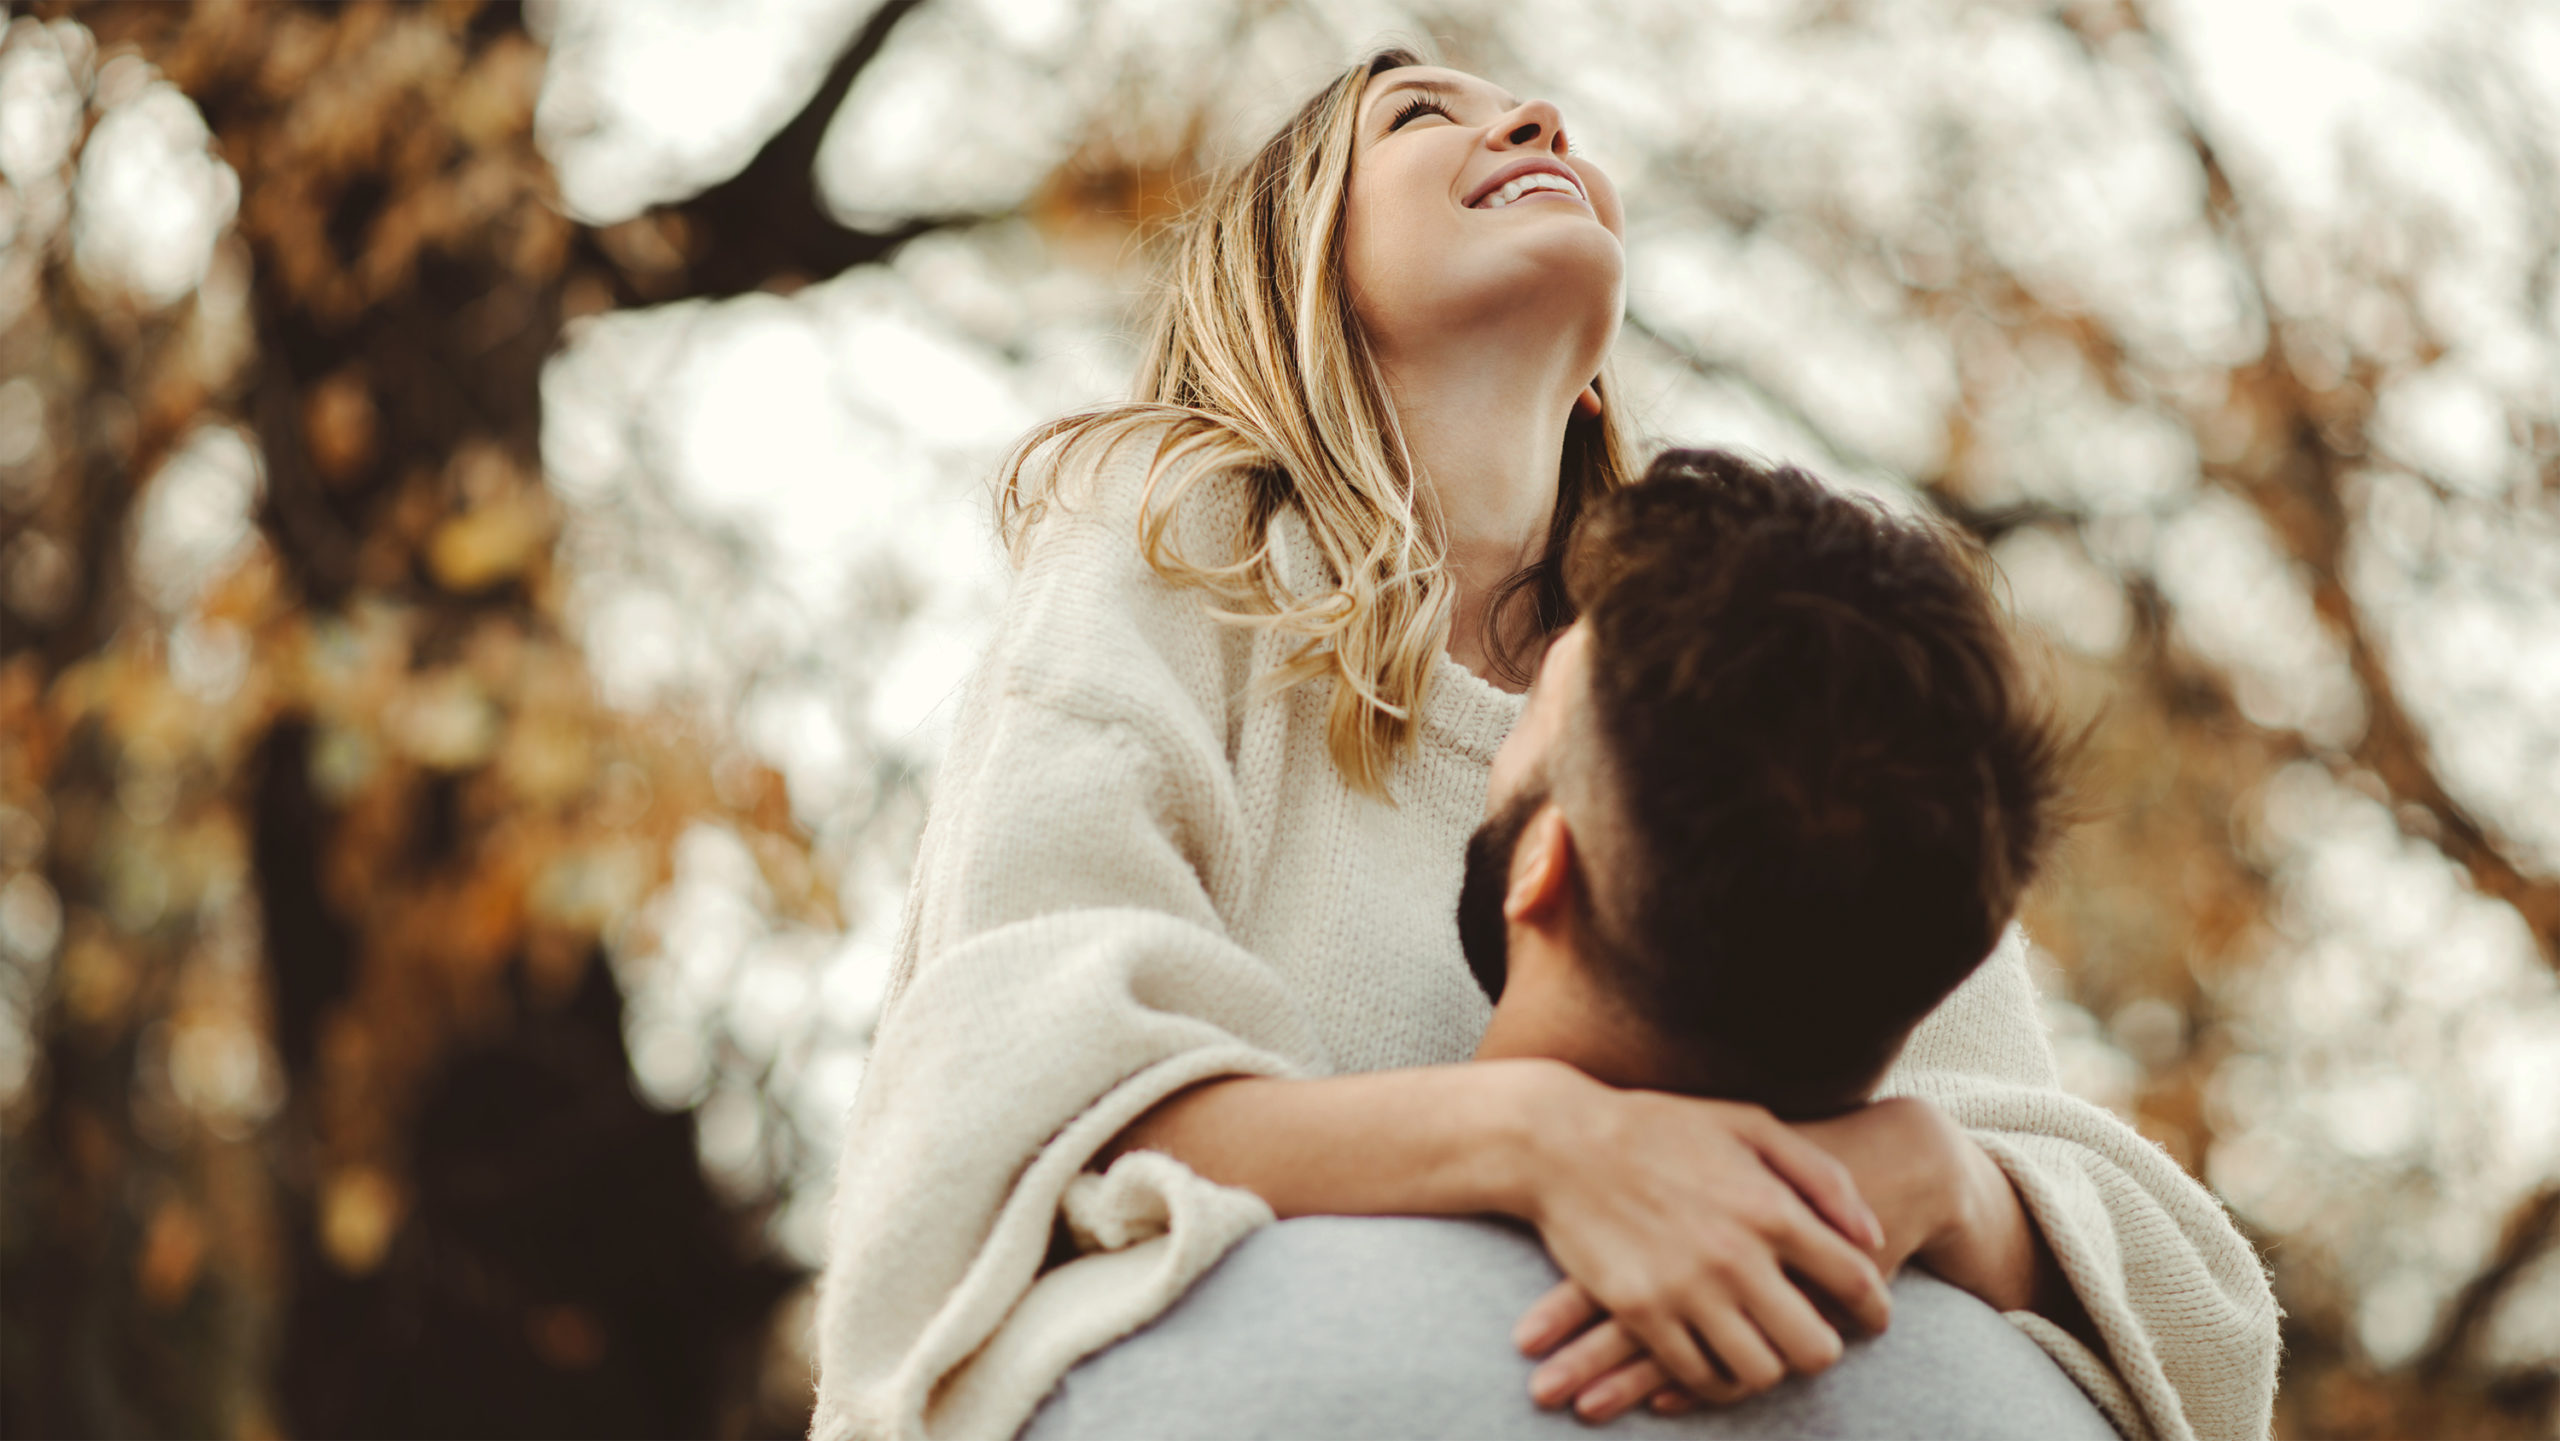 Husband picking up wife demonstrating love is patient and kind